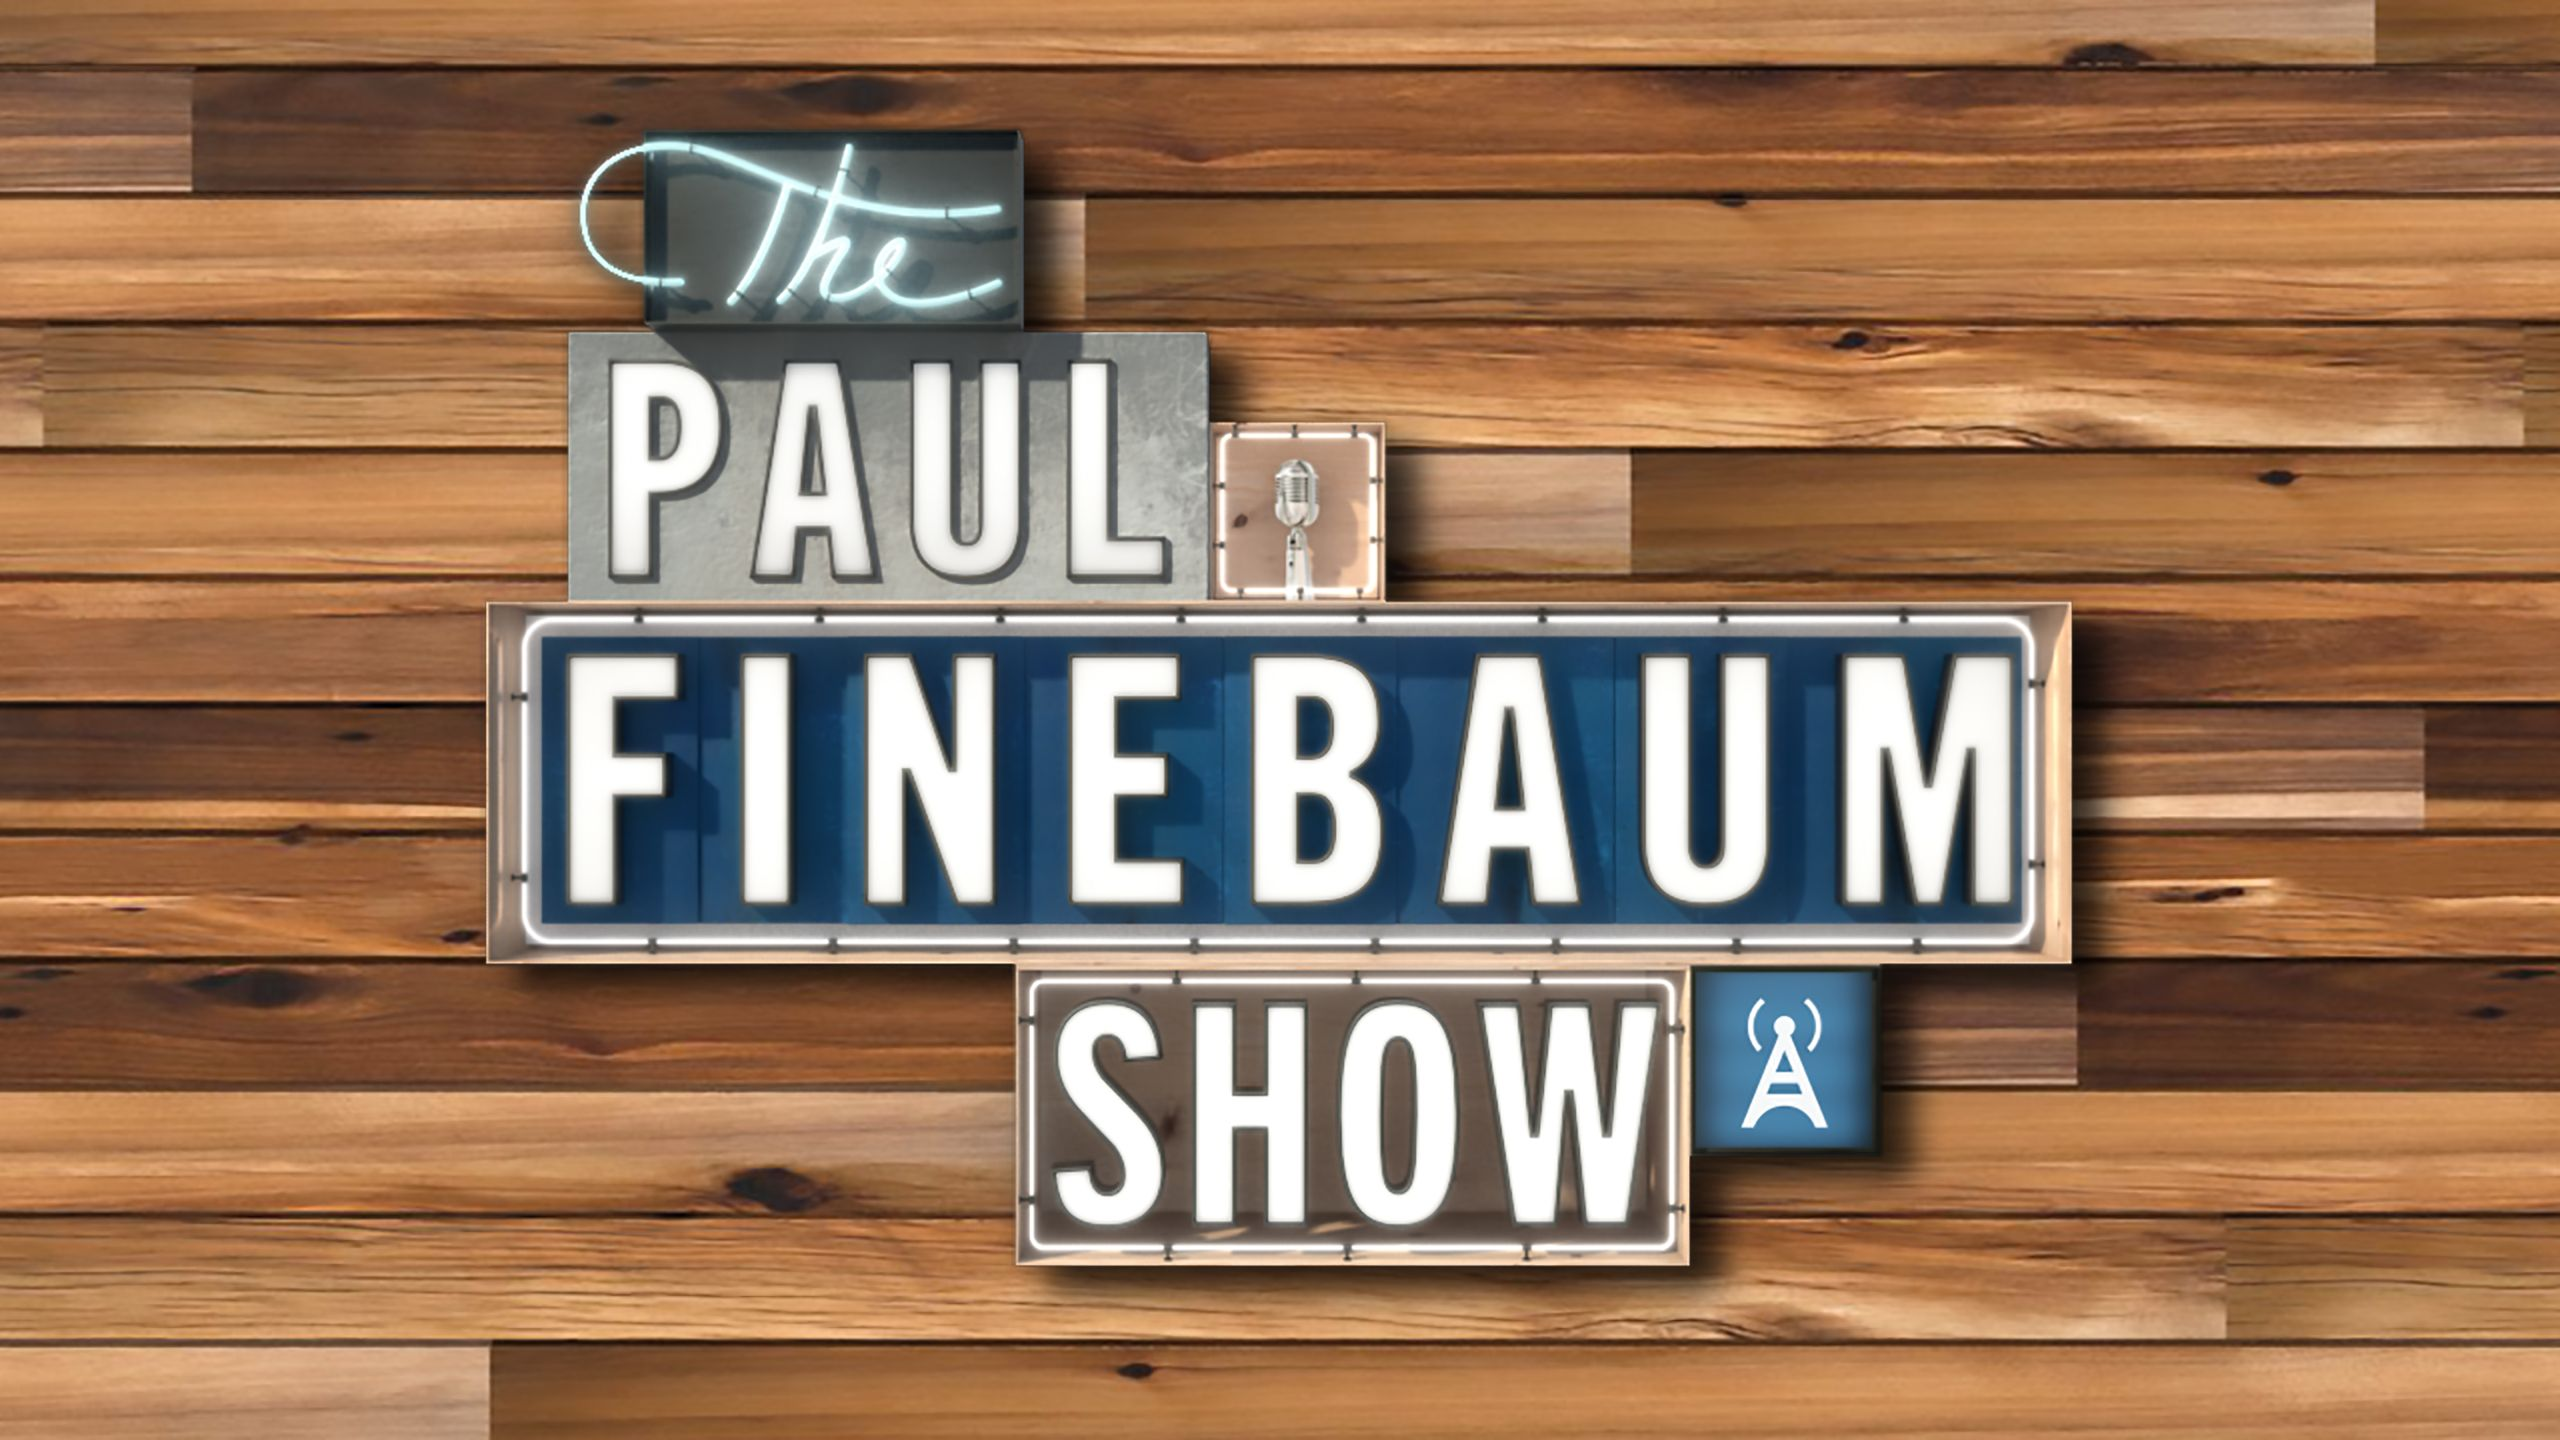 Thu, 1/18 - The Paul Finebaum Show